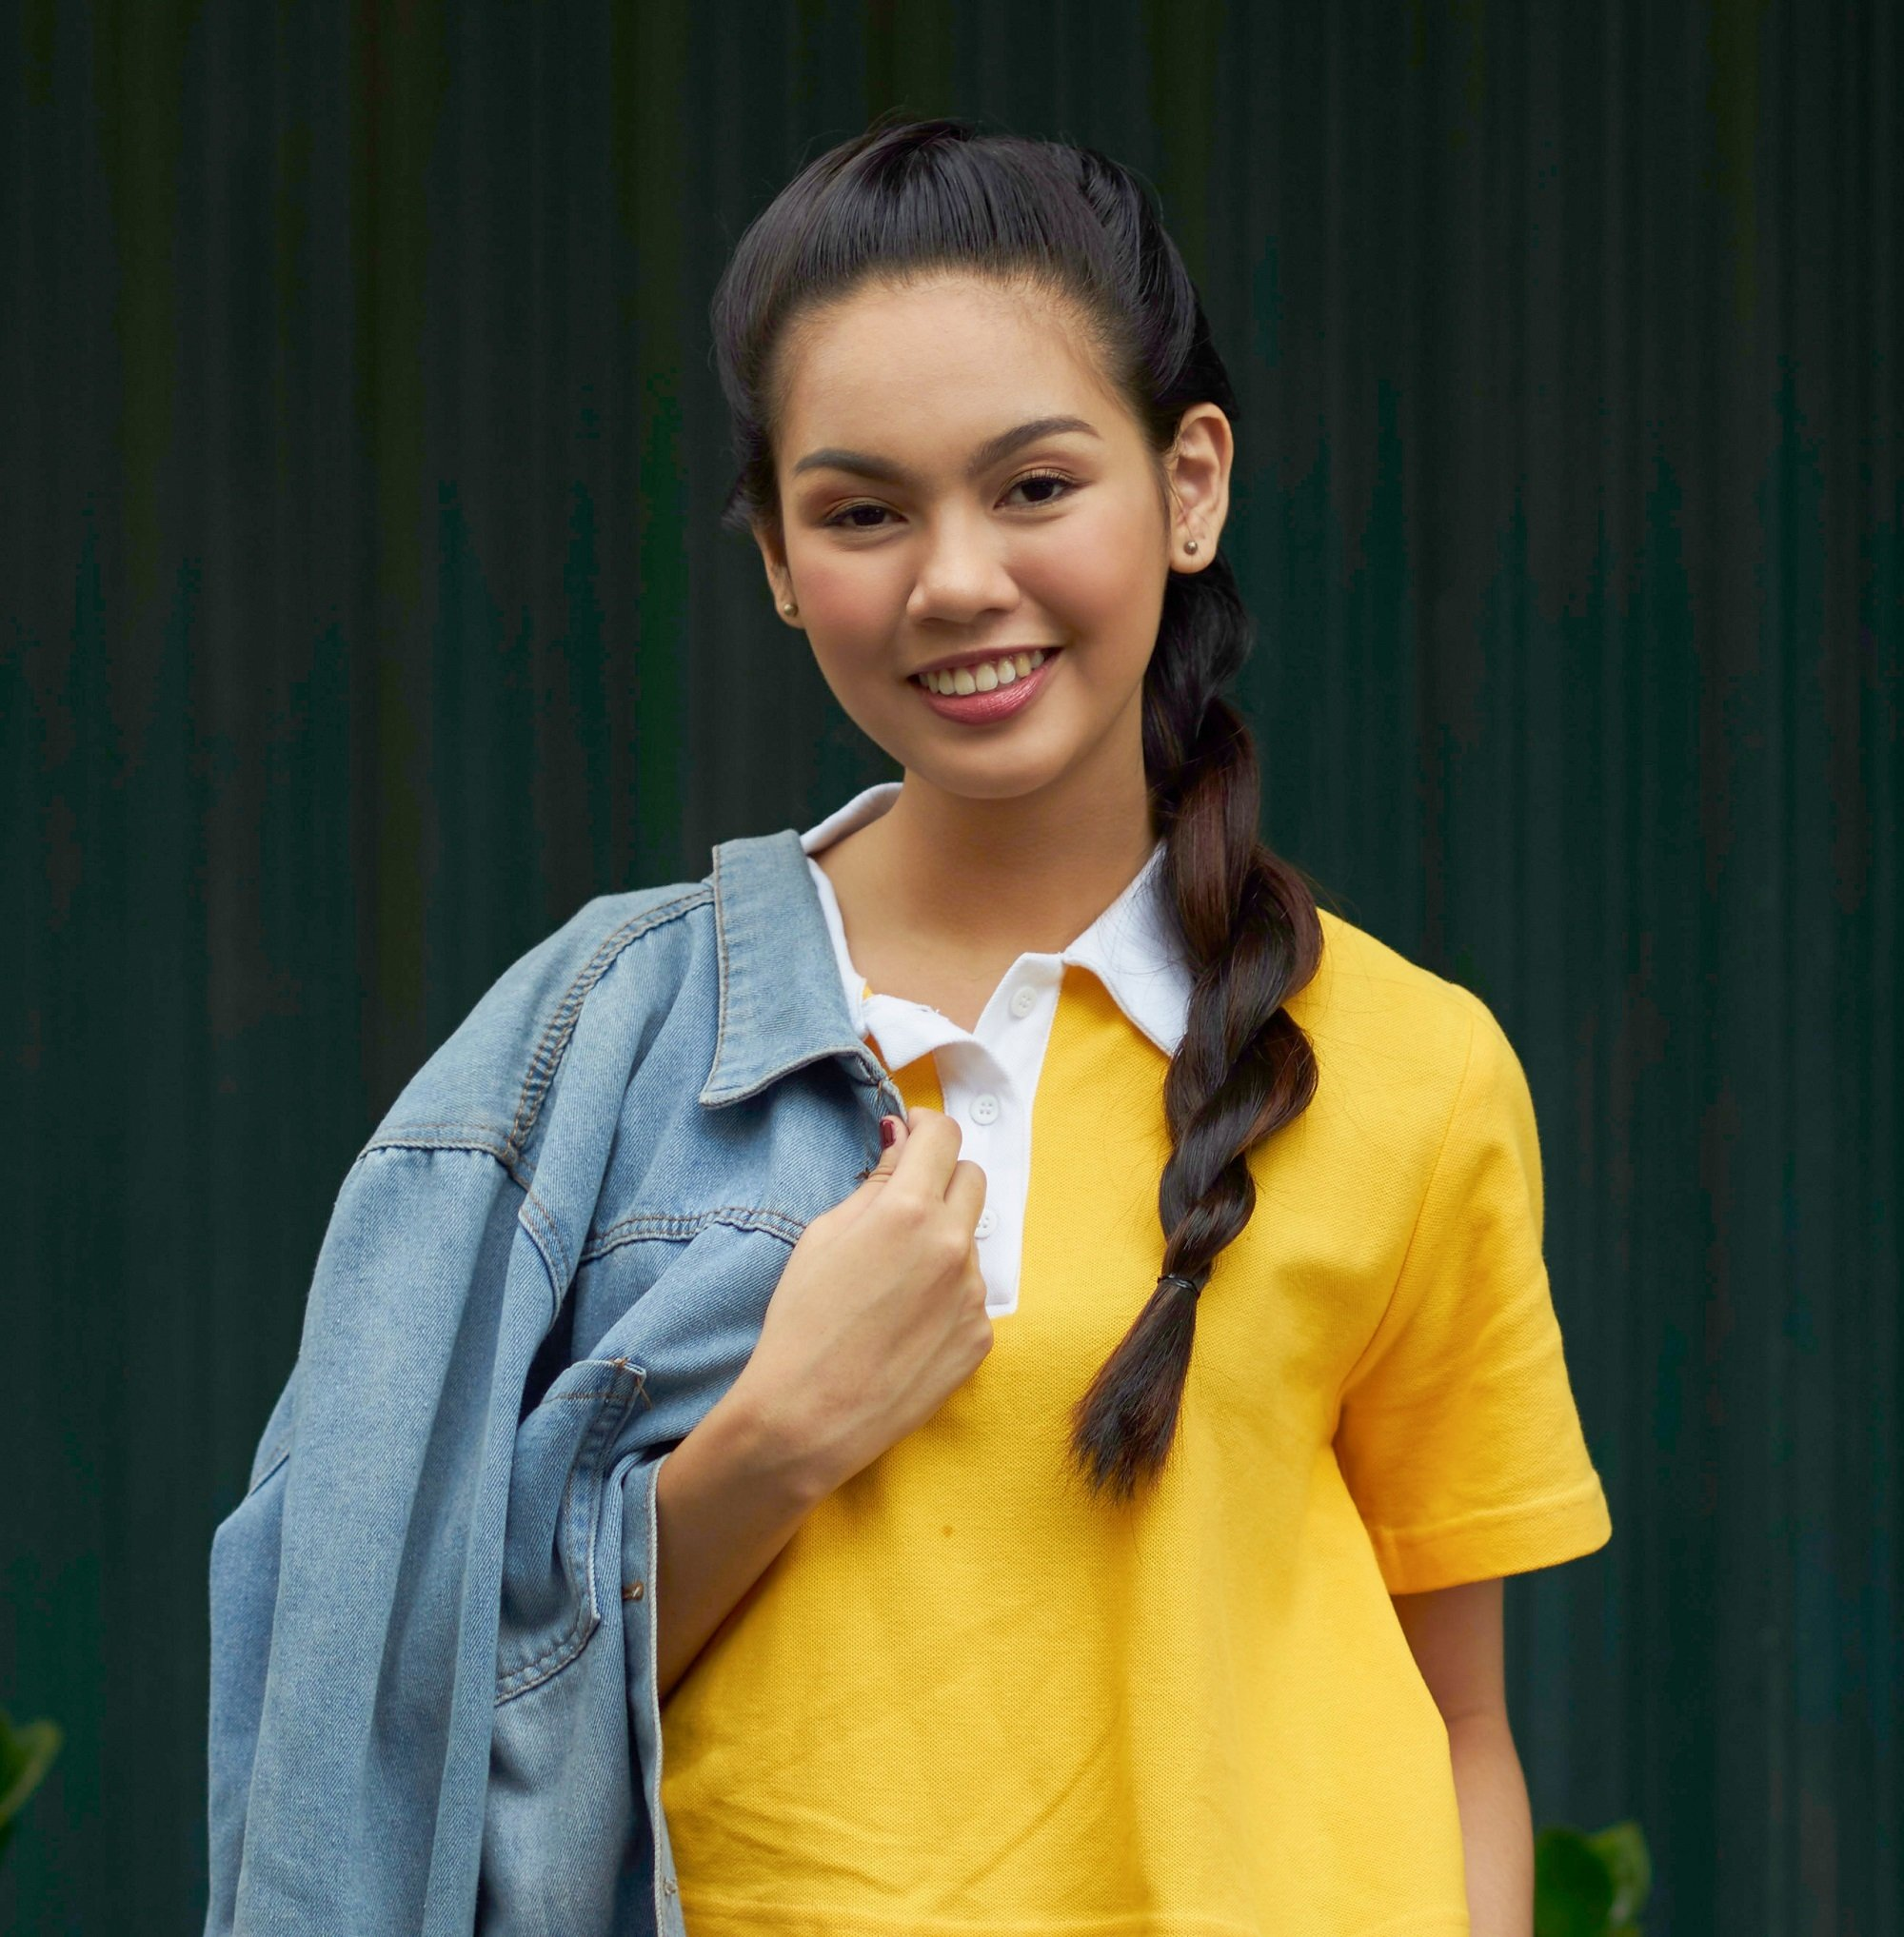 Rope braid: Asian woman with long black hair in a rope braid wearing a yellow shirt outdoors